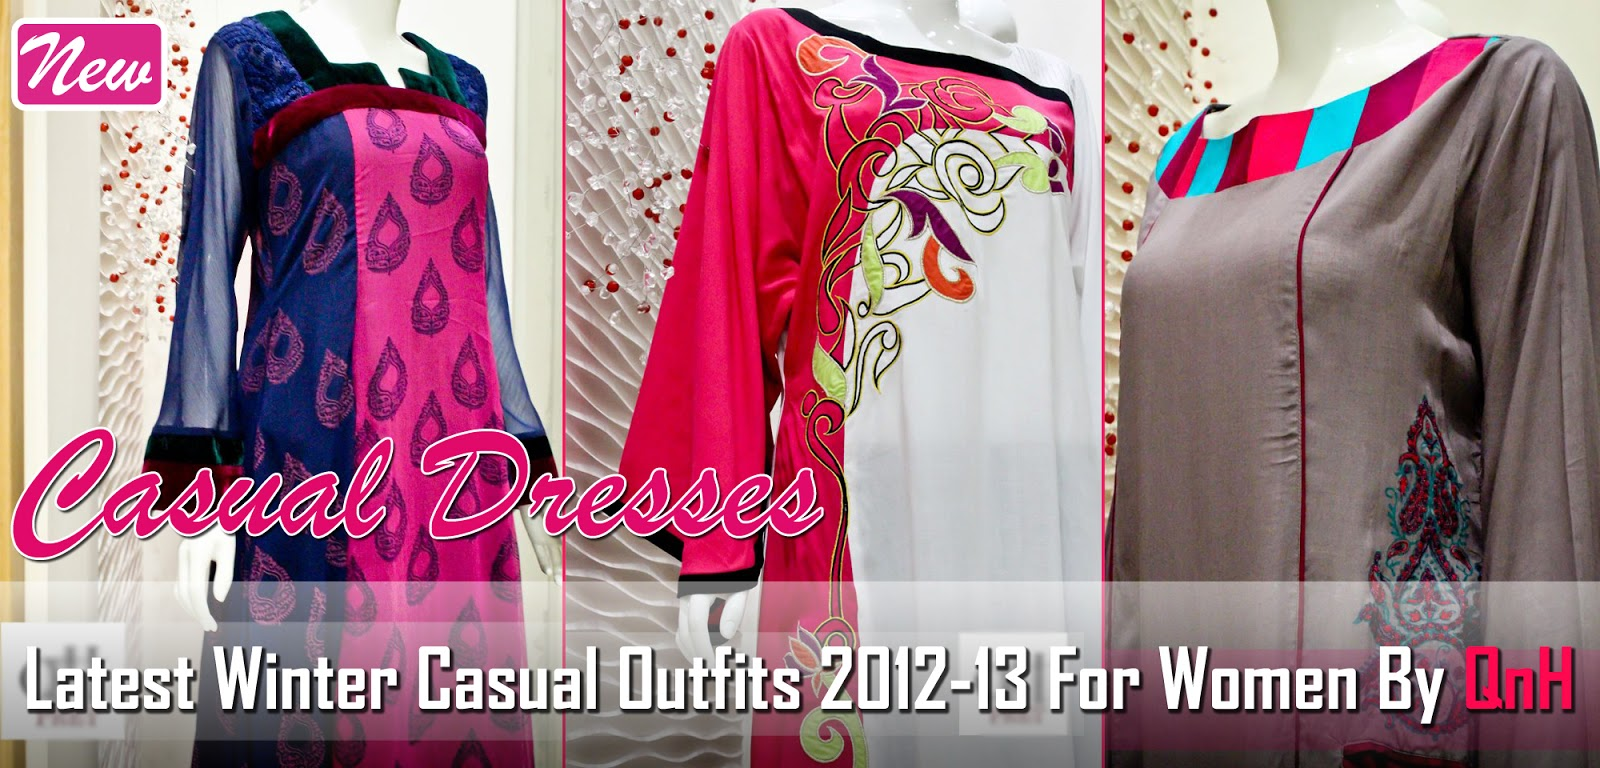 Winter+Casual+Dresses+2013+By+QnH+-+Banner+-+www.Fashionhuntworld